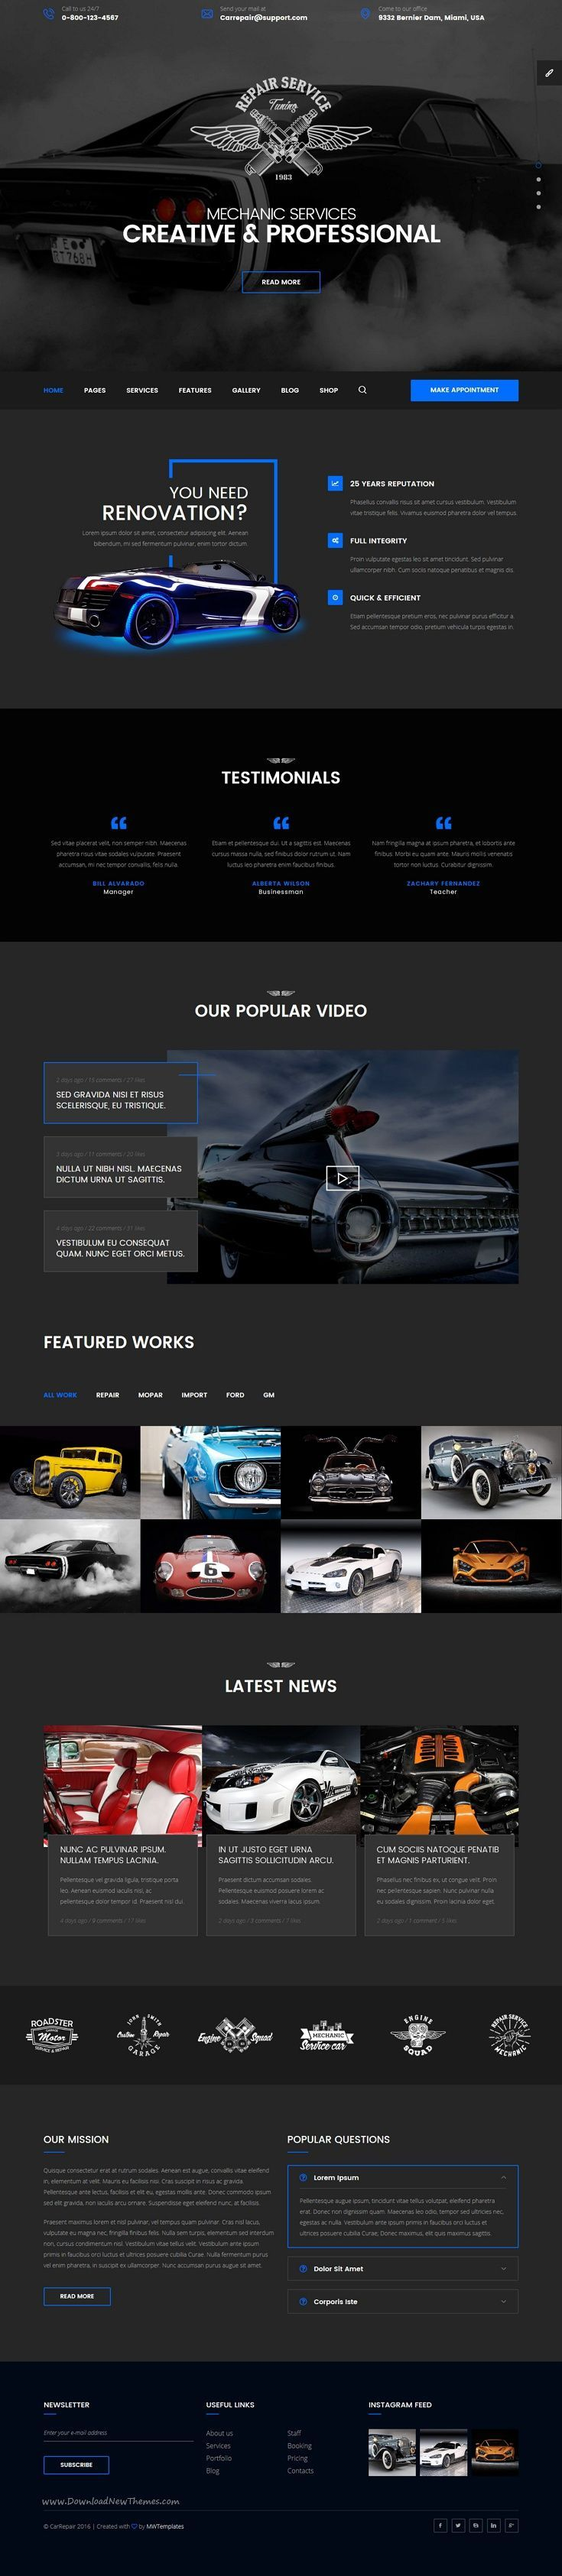 Mechanic is a new, clean and professional #HTML Template for #auto #car services, #workshops or auto parts shop website download now➩ https://themeforest.net/item/mechanic-car-repair-tuning-routine-maintenance-html-template-with-visual-builder/18948149?ref=Datasata Everybody with a business needs to have marketing platform that would provide a website, with lead capture up to 10K leads, sales funnels, play videos, and work on PC, Tablet and notepad for less than US$50.00 monthly fee. Join us…